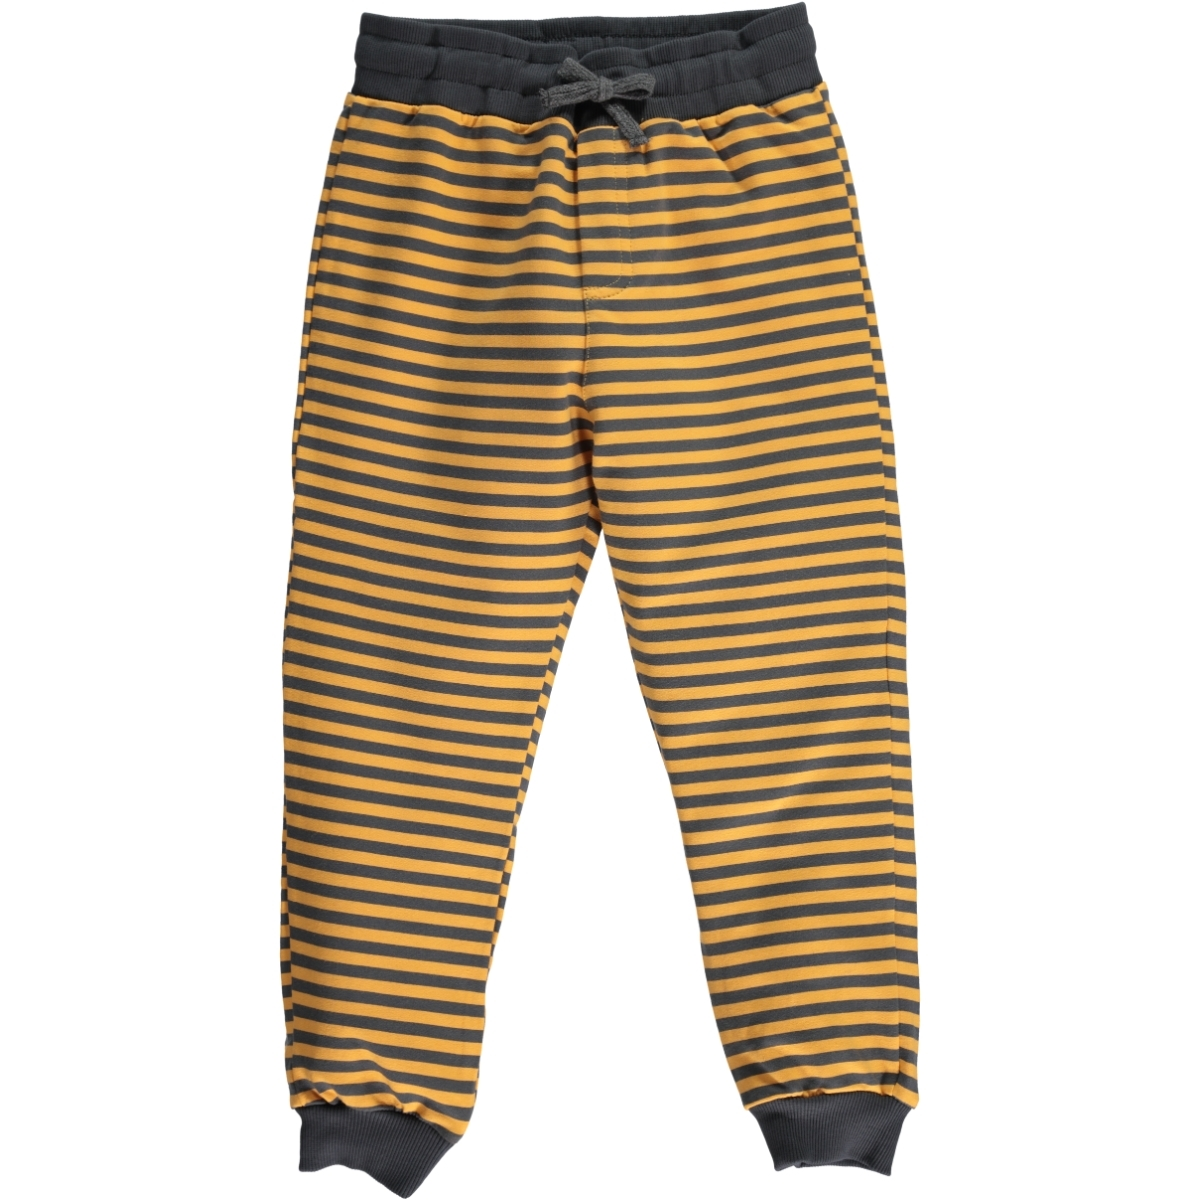 Cvl Mustard Sweatpants Boy Age 6-9